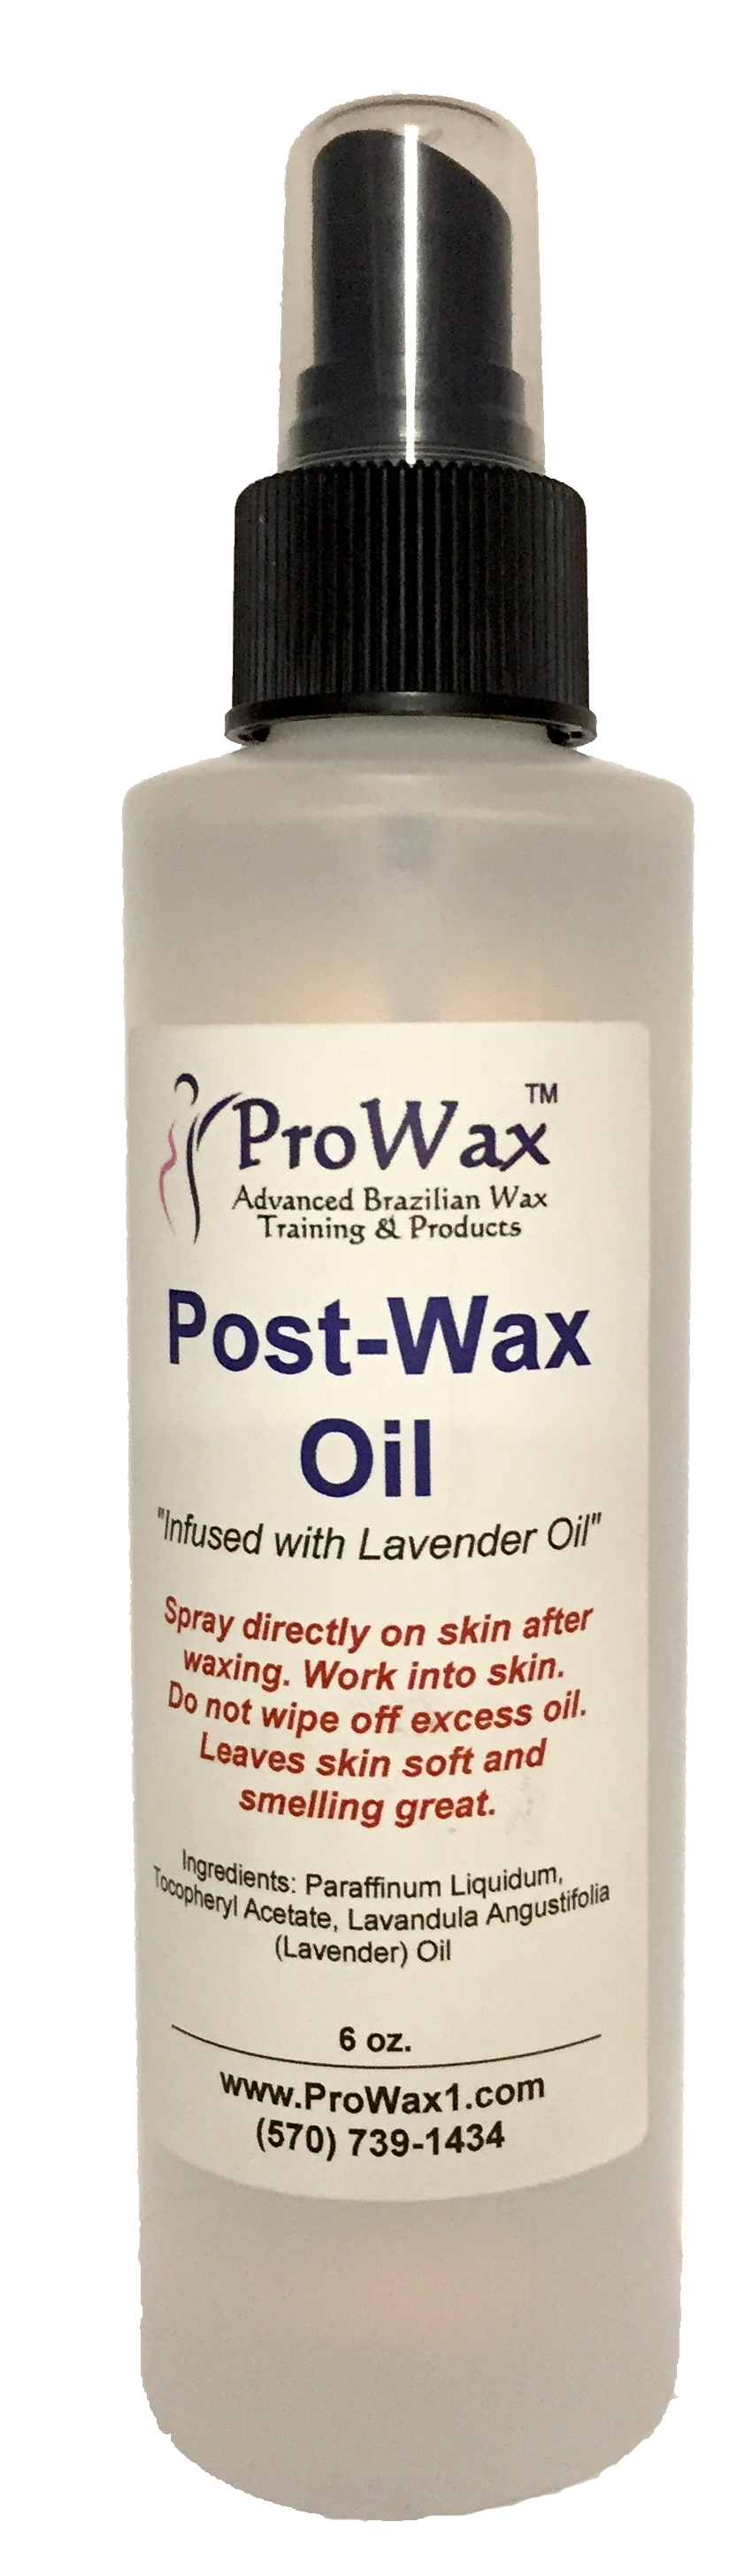 post-wax-oil-pic.jpg